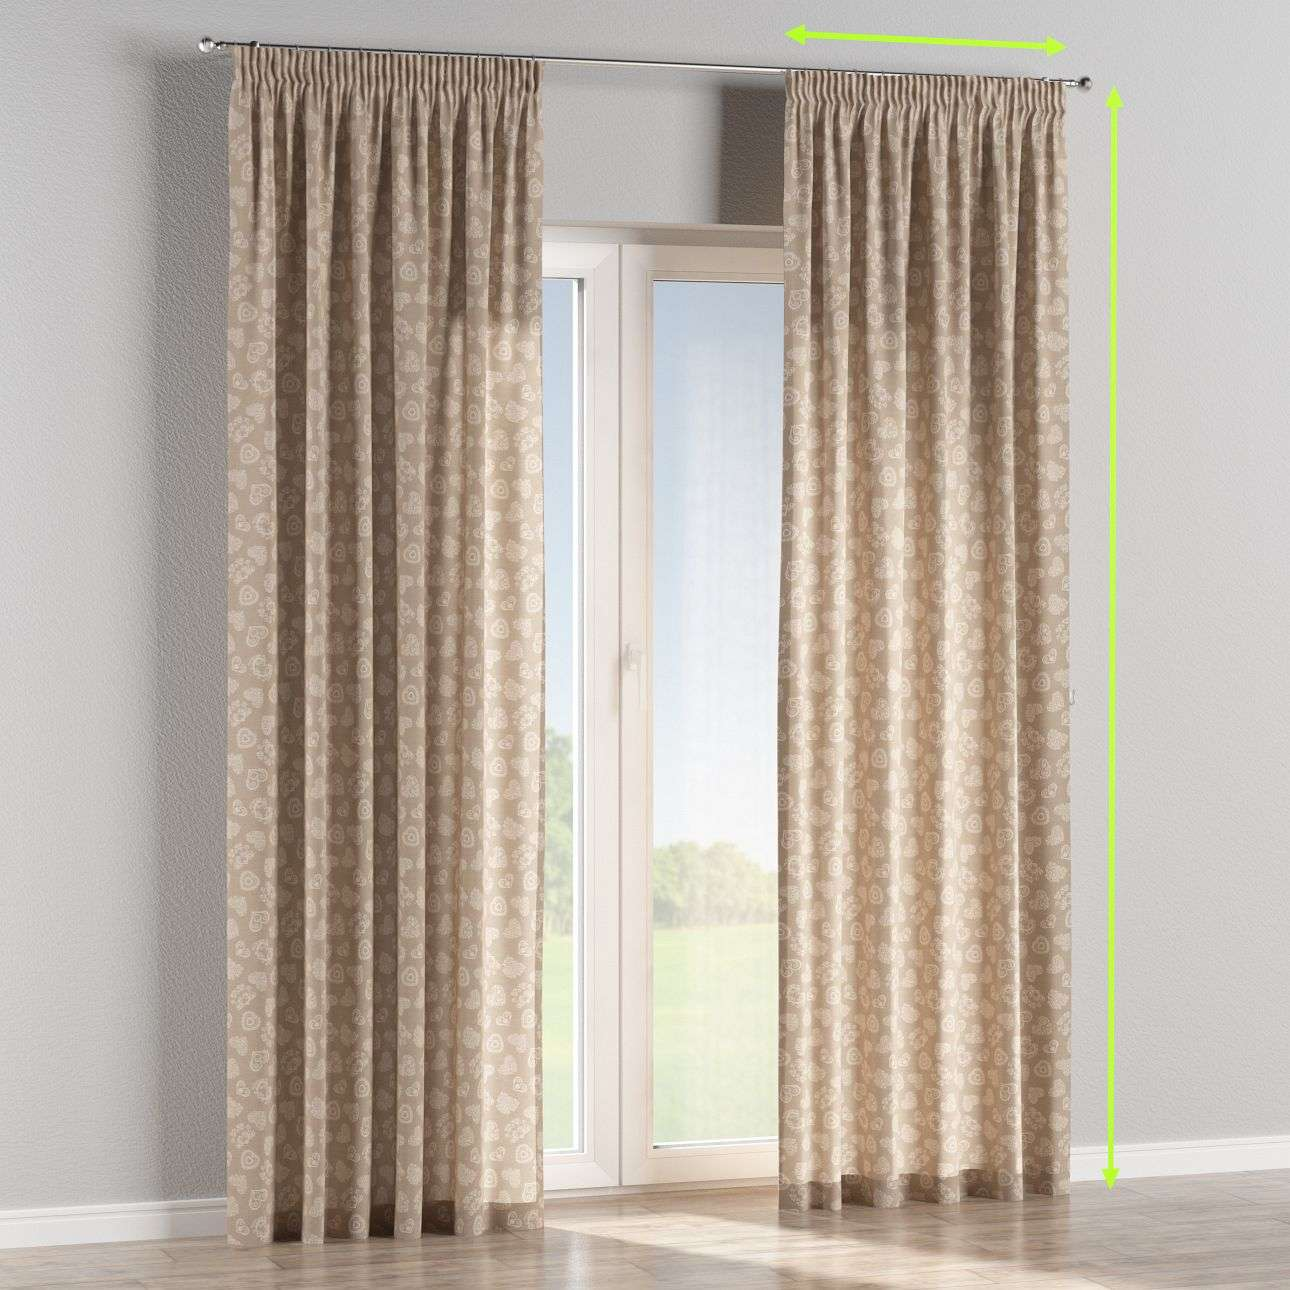 Pencil pleat curtains in collection Flowers, fabric: 140-56